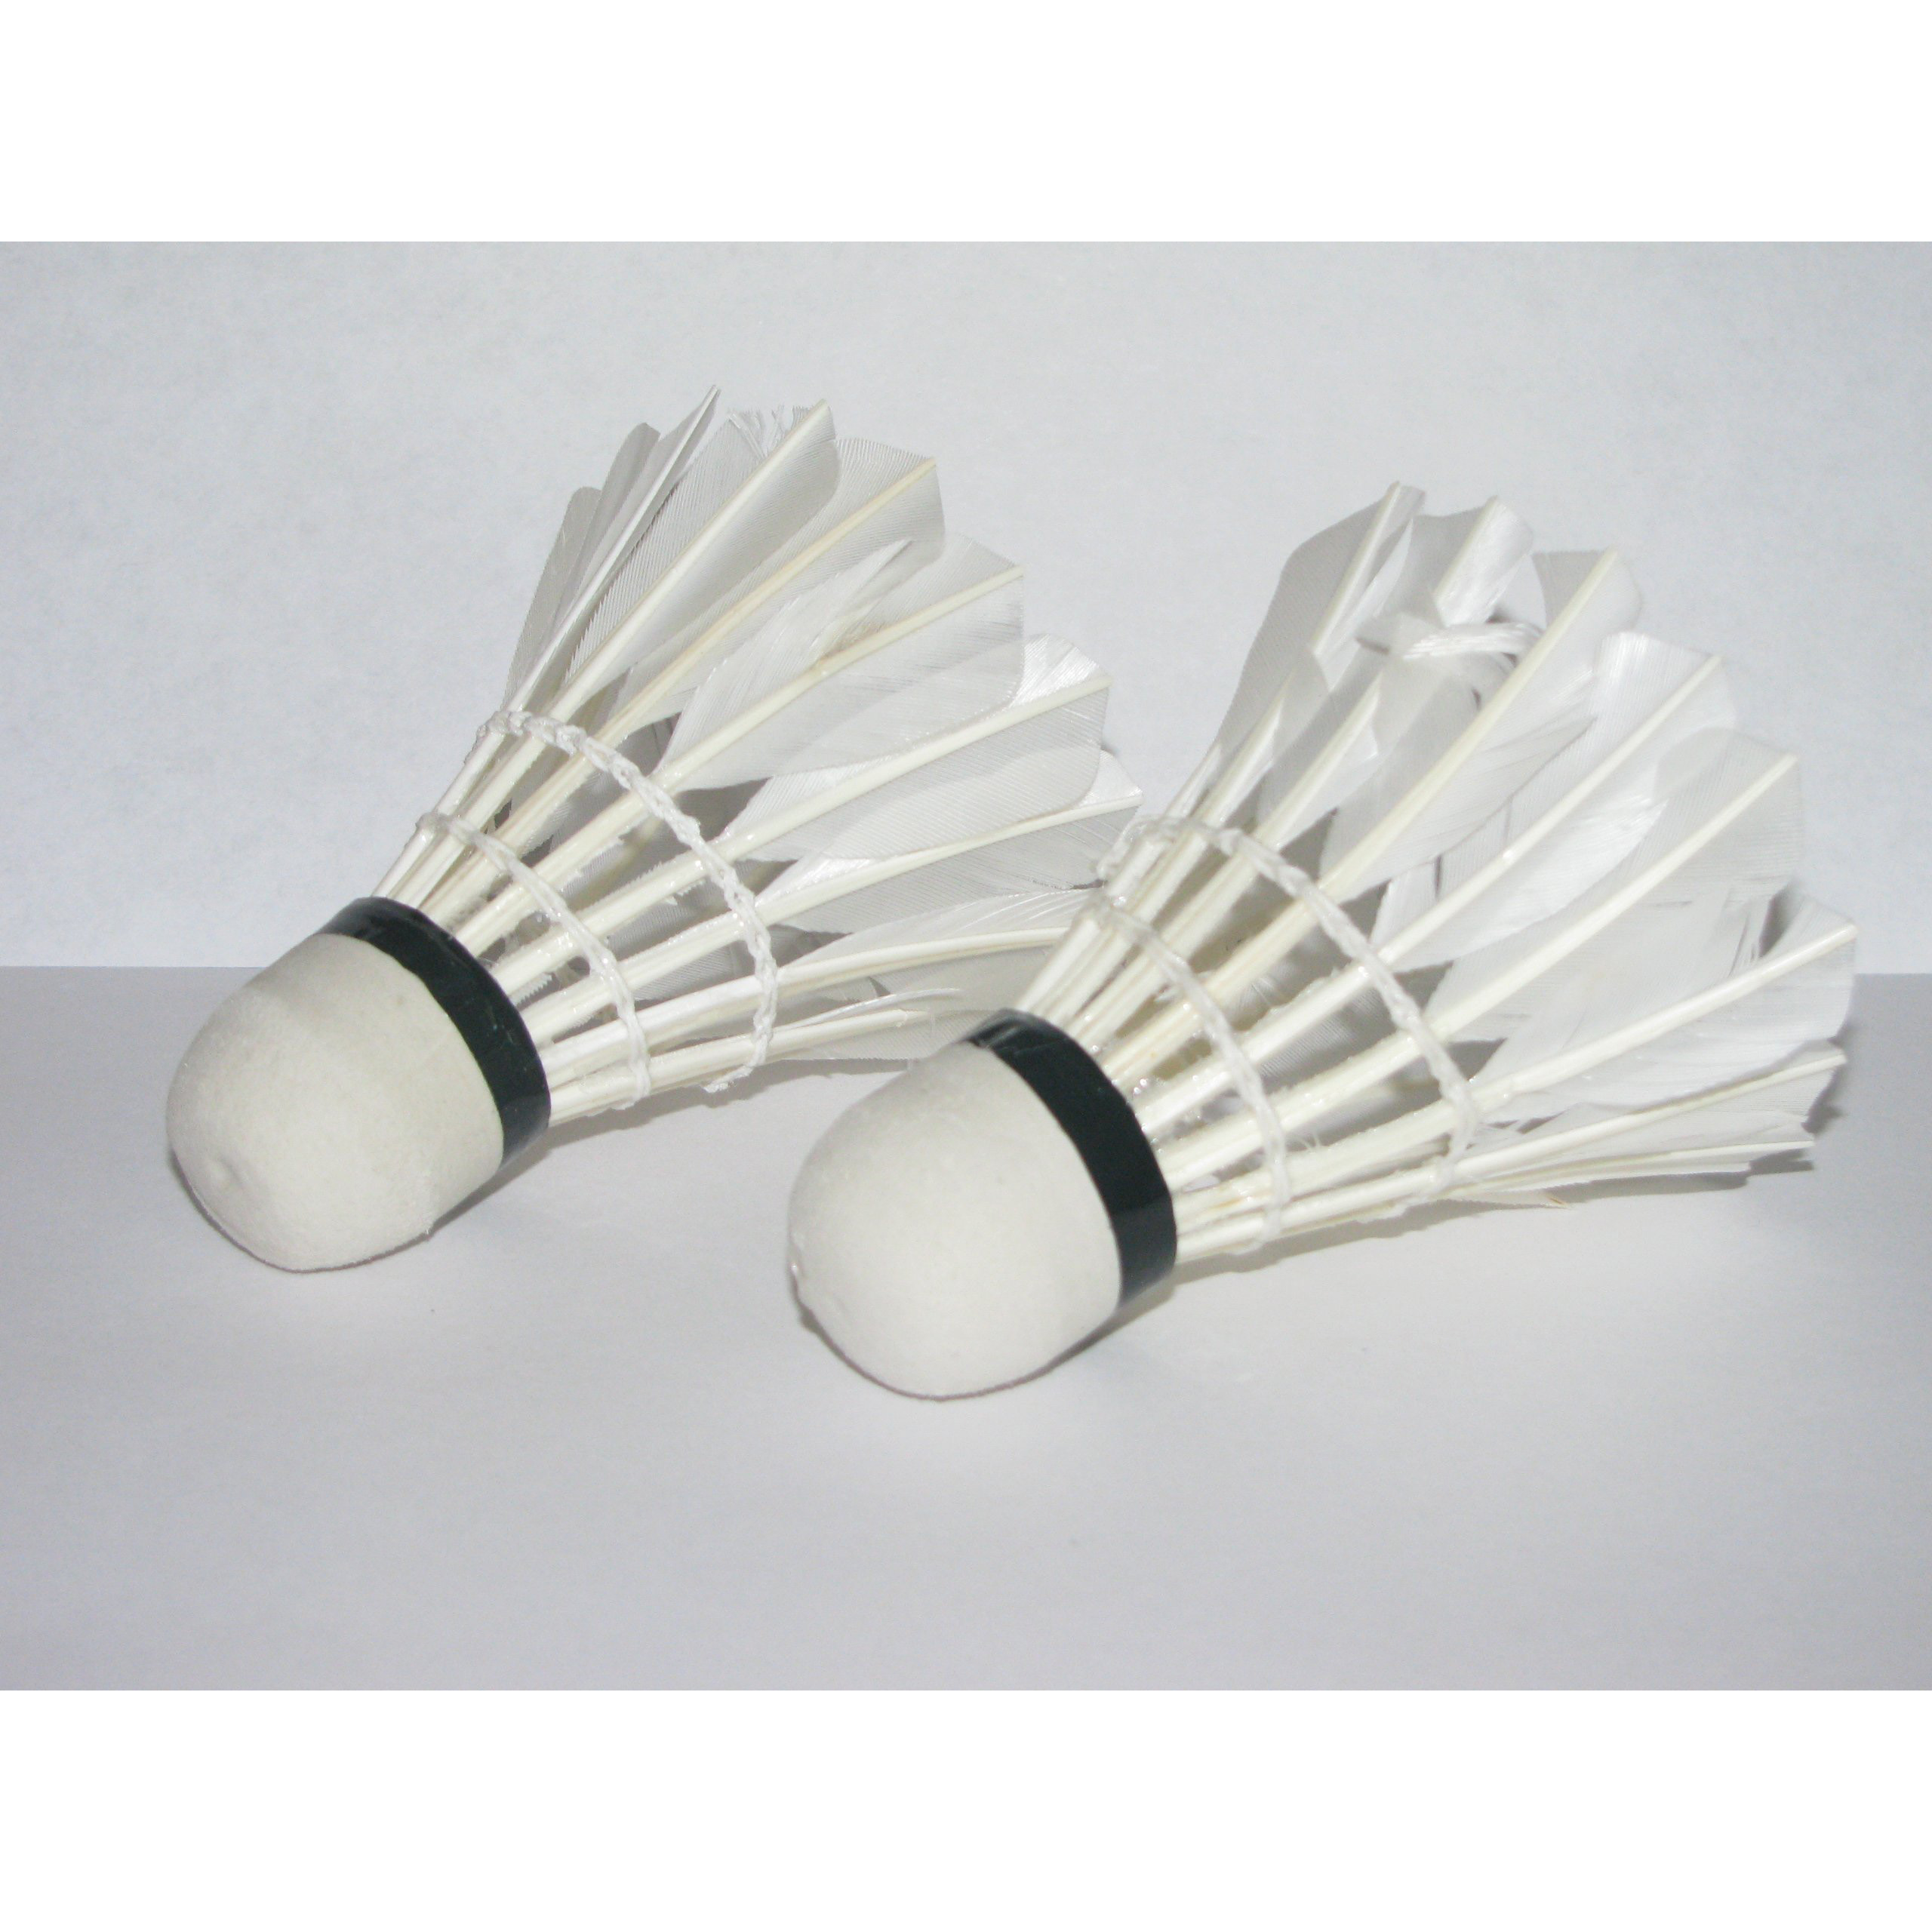 MUMIAN LED Light-Up Badminton Birdies (Set of 2) Shuttlecocks Shuttlecock Feather